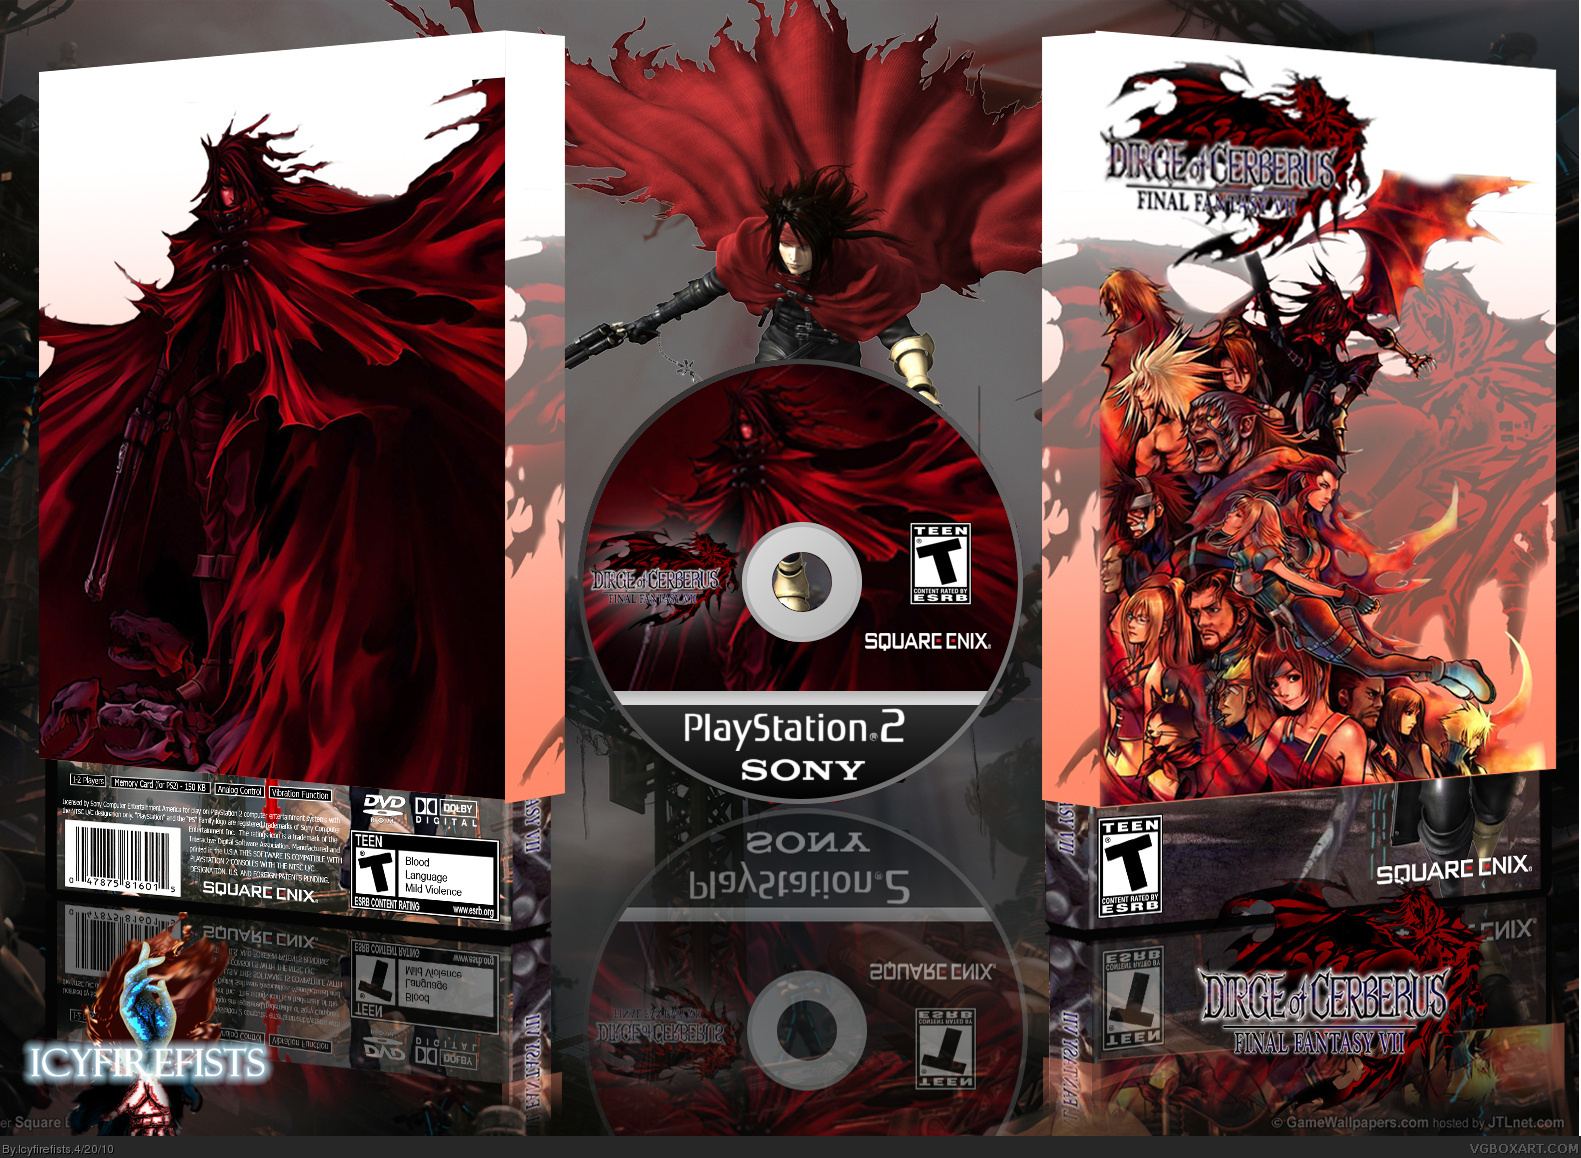 Dirge of Cerberus: Final Fantasy VII box cover